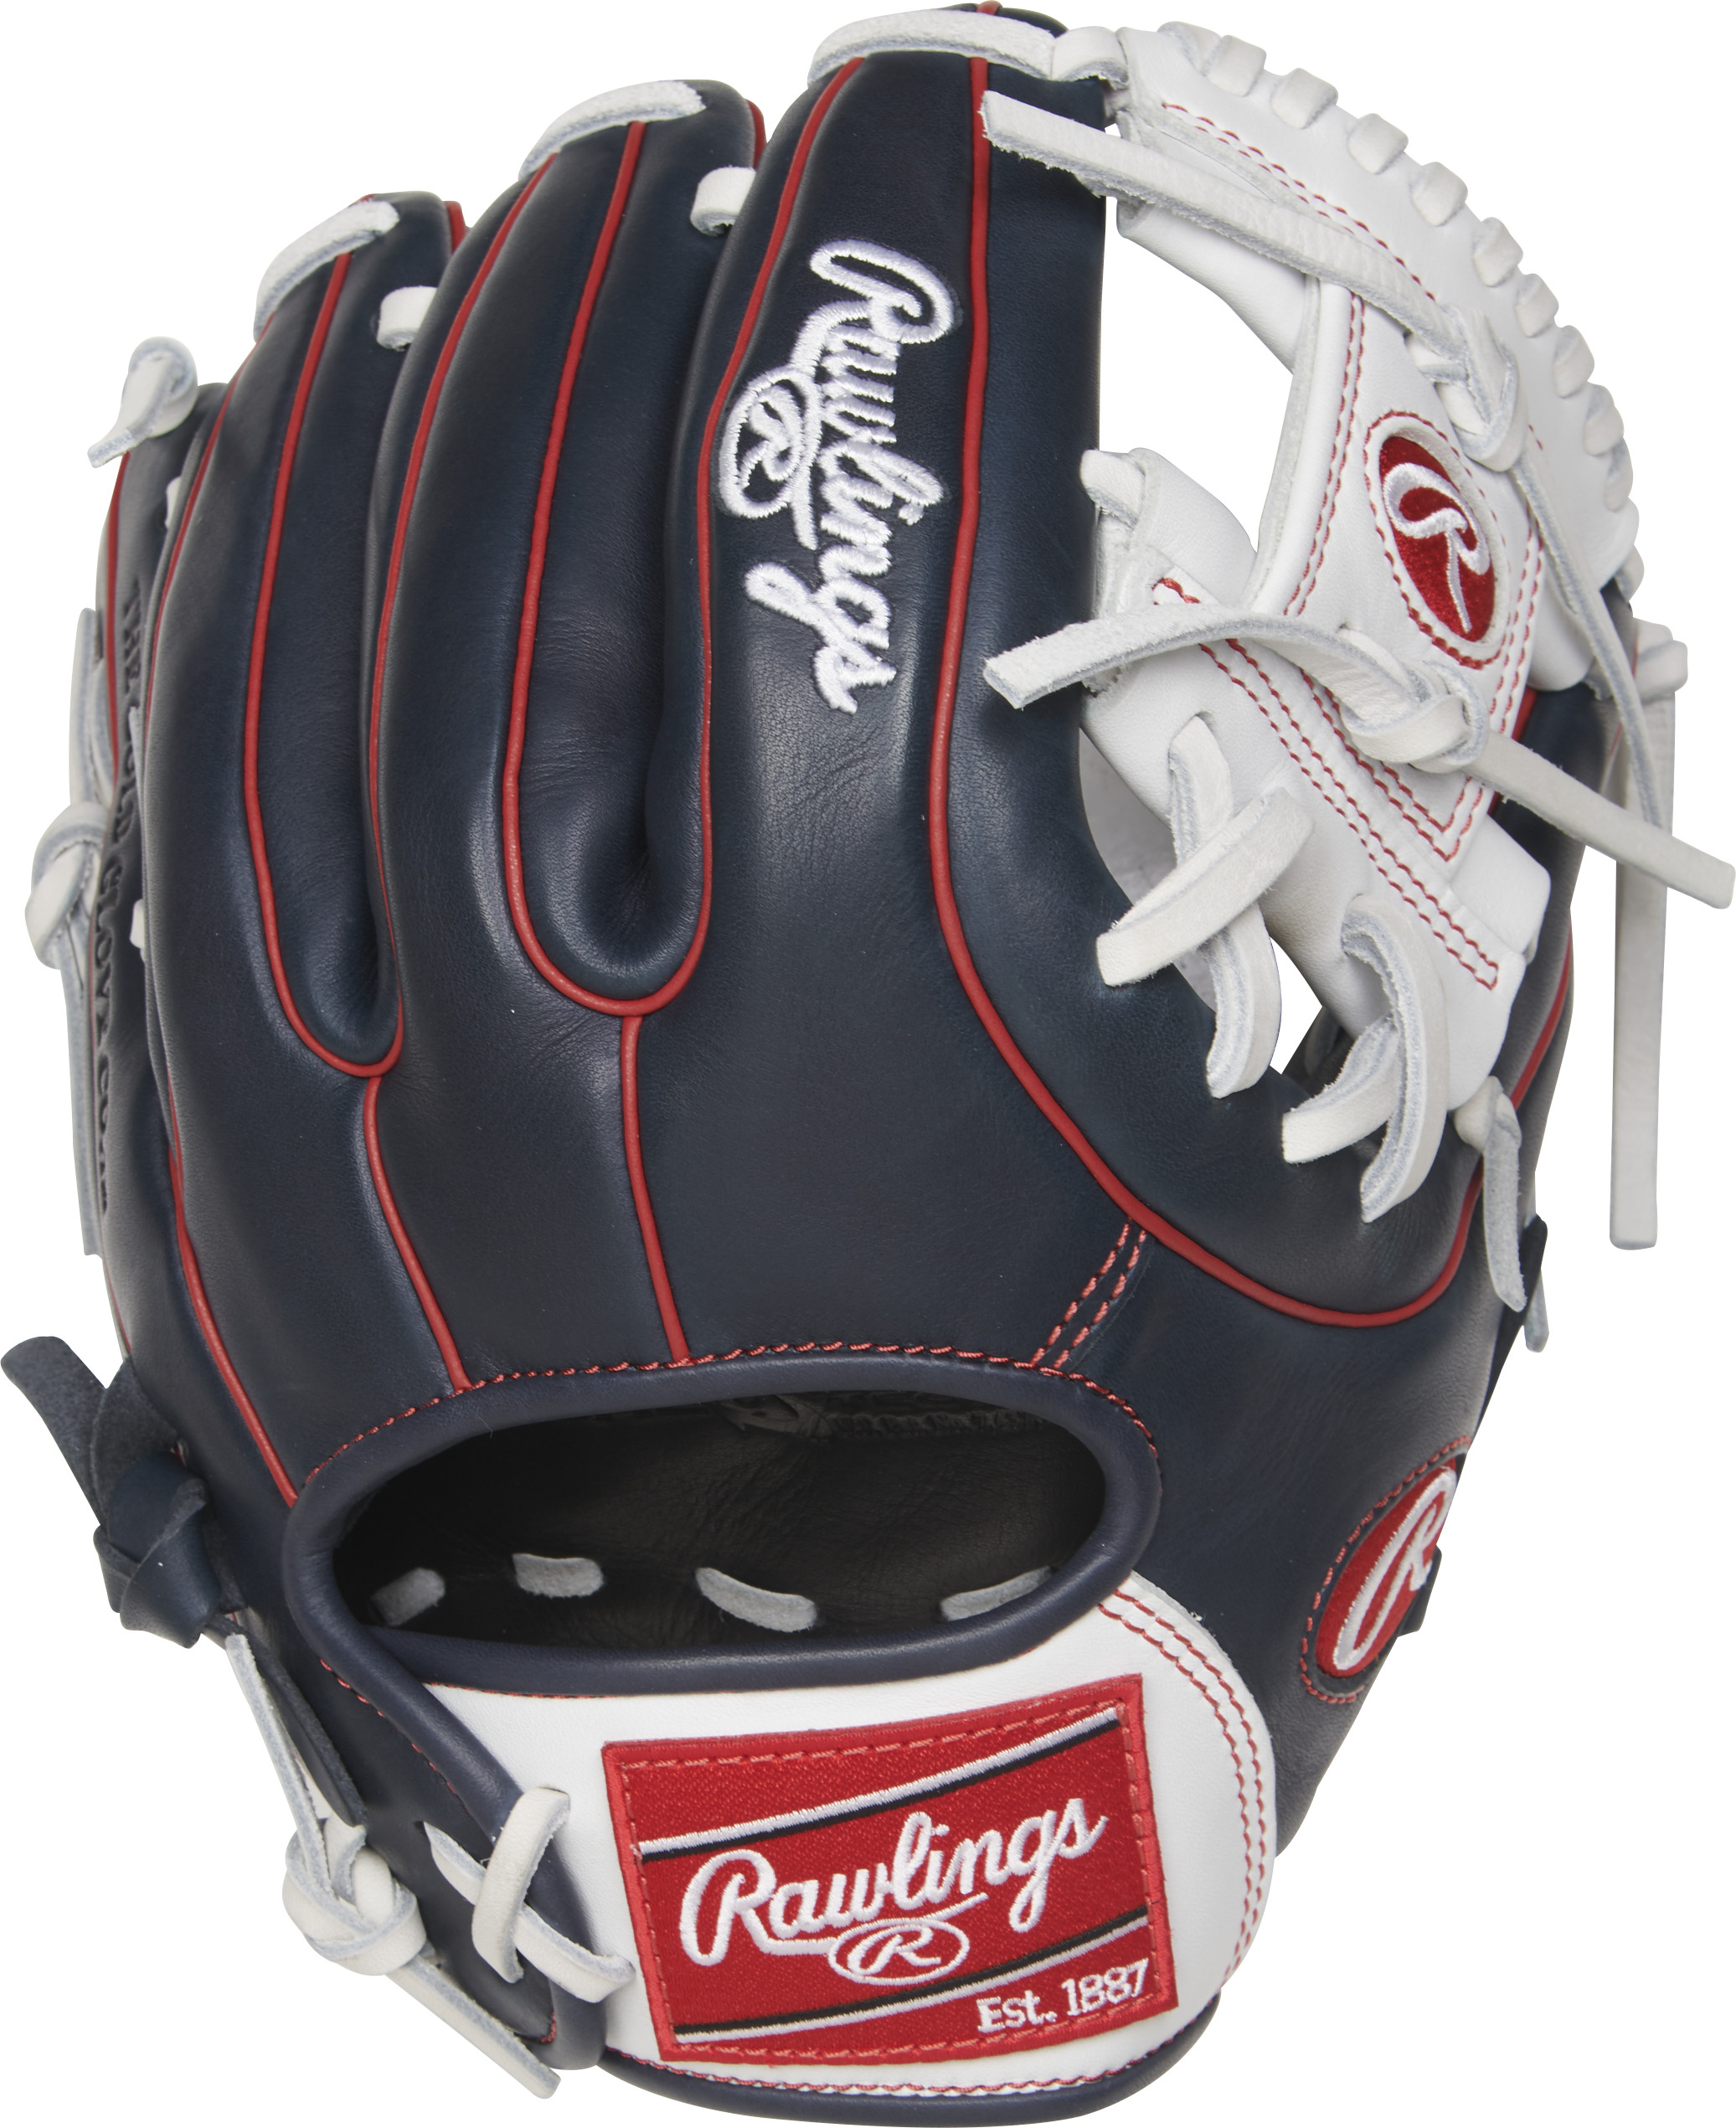 http://www.bestbatdeals.com/images/gloves/rawlings/GXLE312-2NW-2.jpg